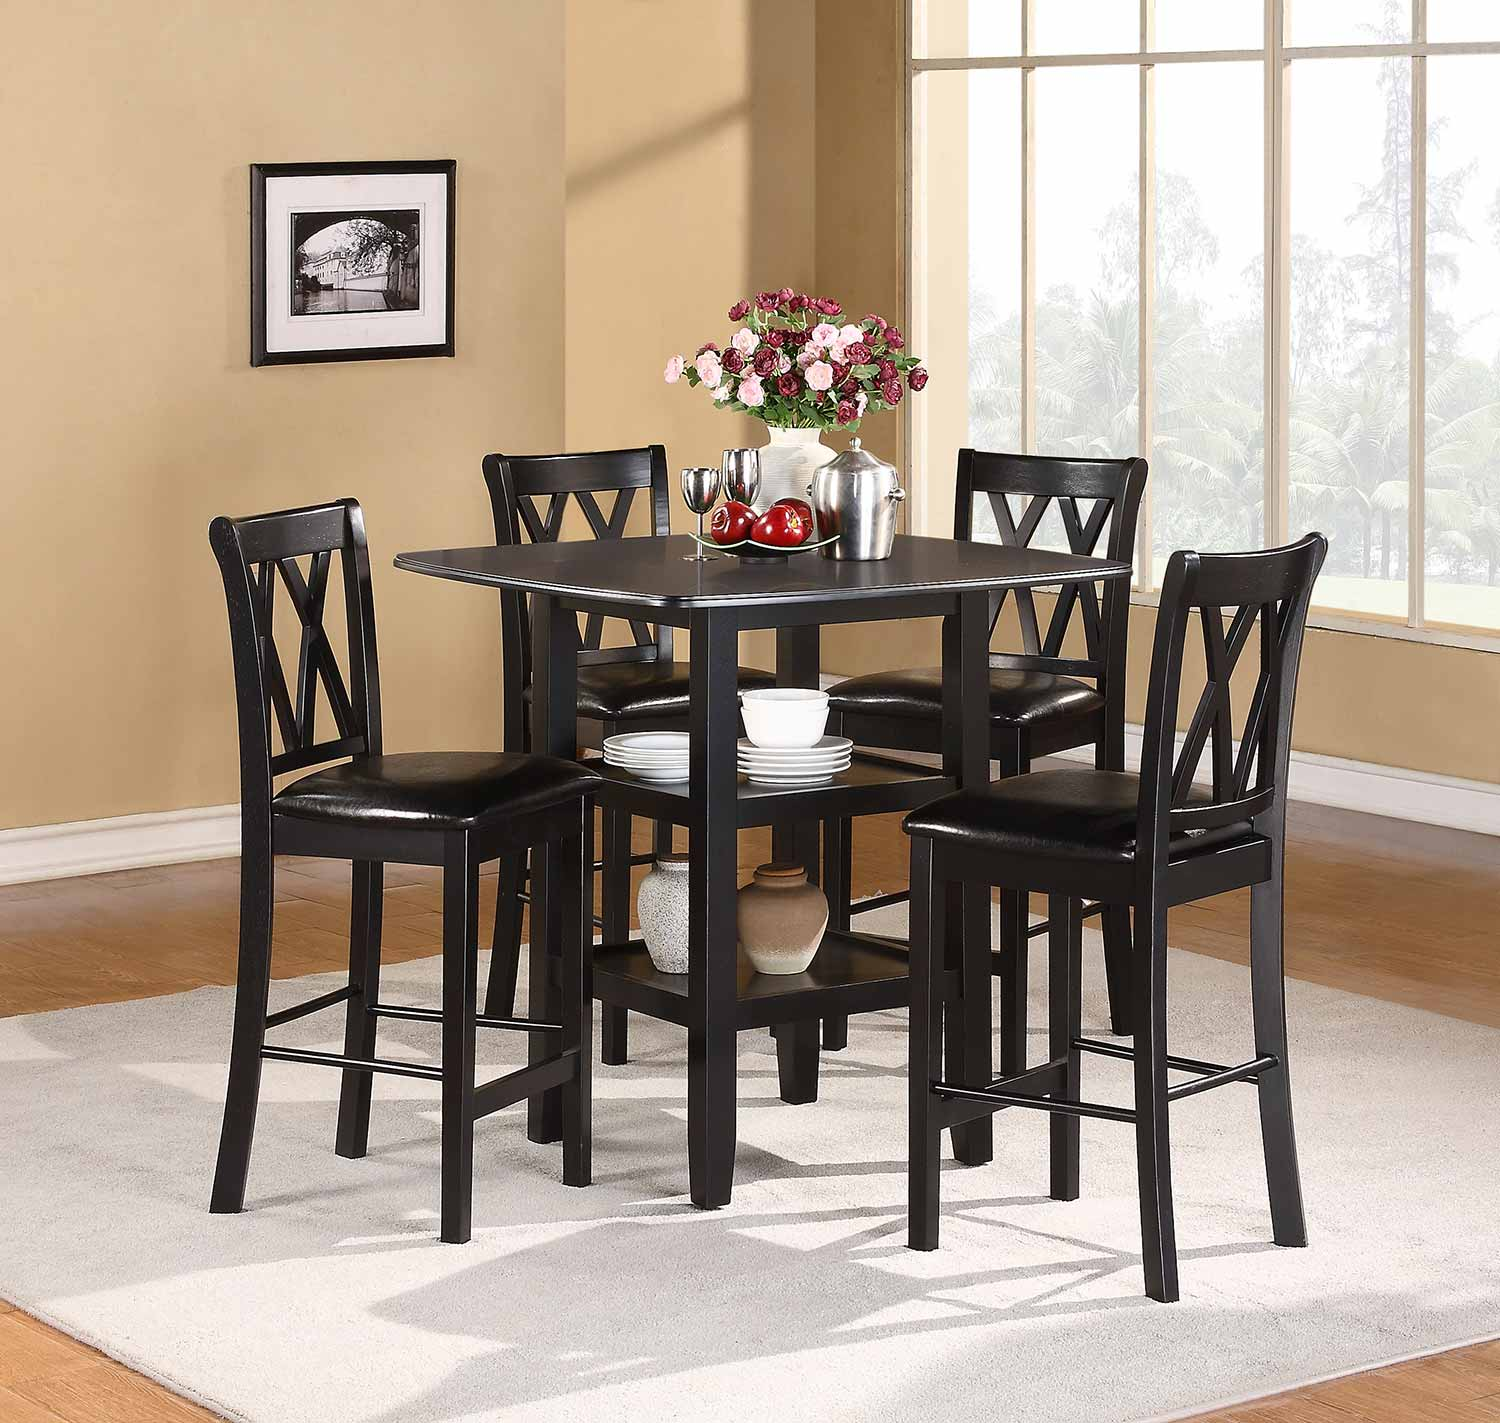 Homelegance Norman 5-Piece Pack Counter Height Set - Black